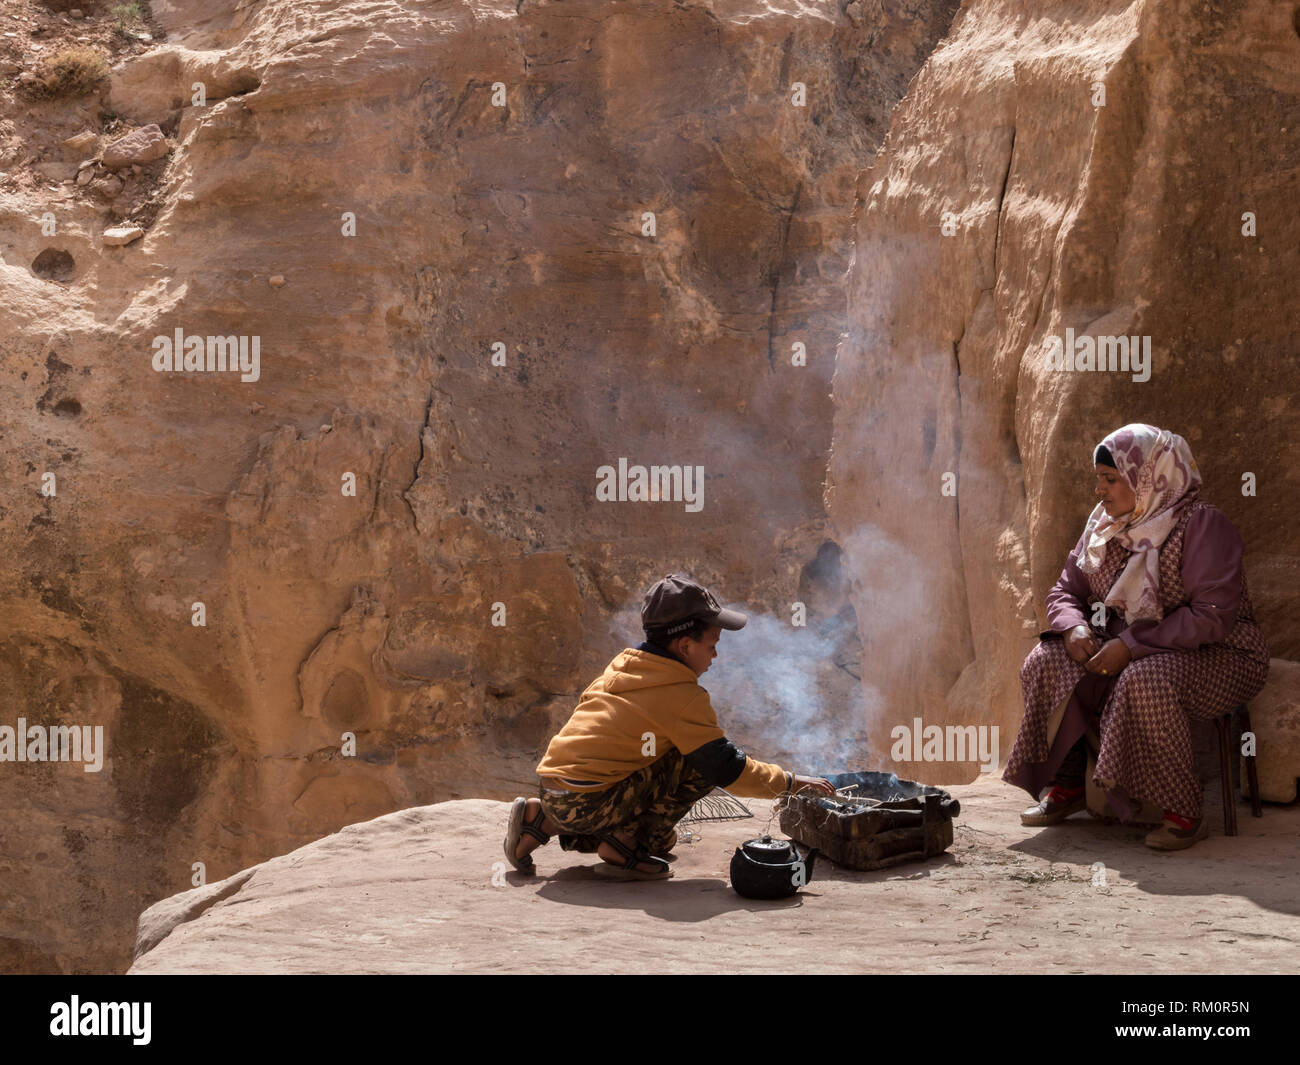 A young Bedouin boy carefully prepares a steaming hot meal and tea under the gaze of his mother at the base of a remote cave in Petra in Jordan. Stock Photo